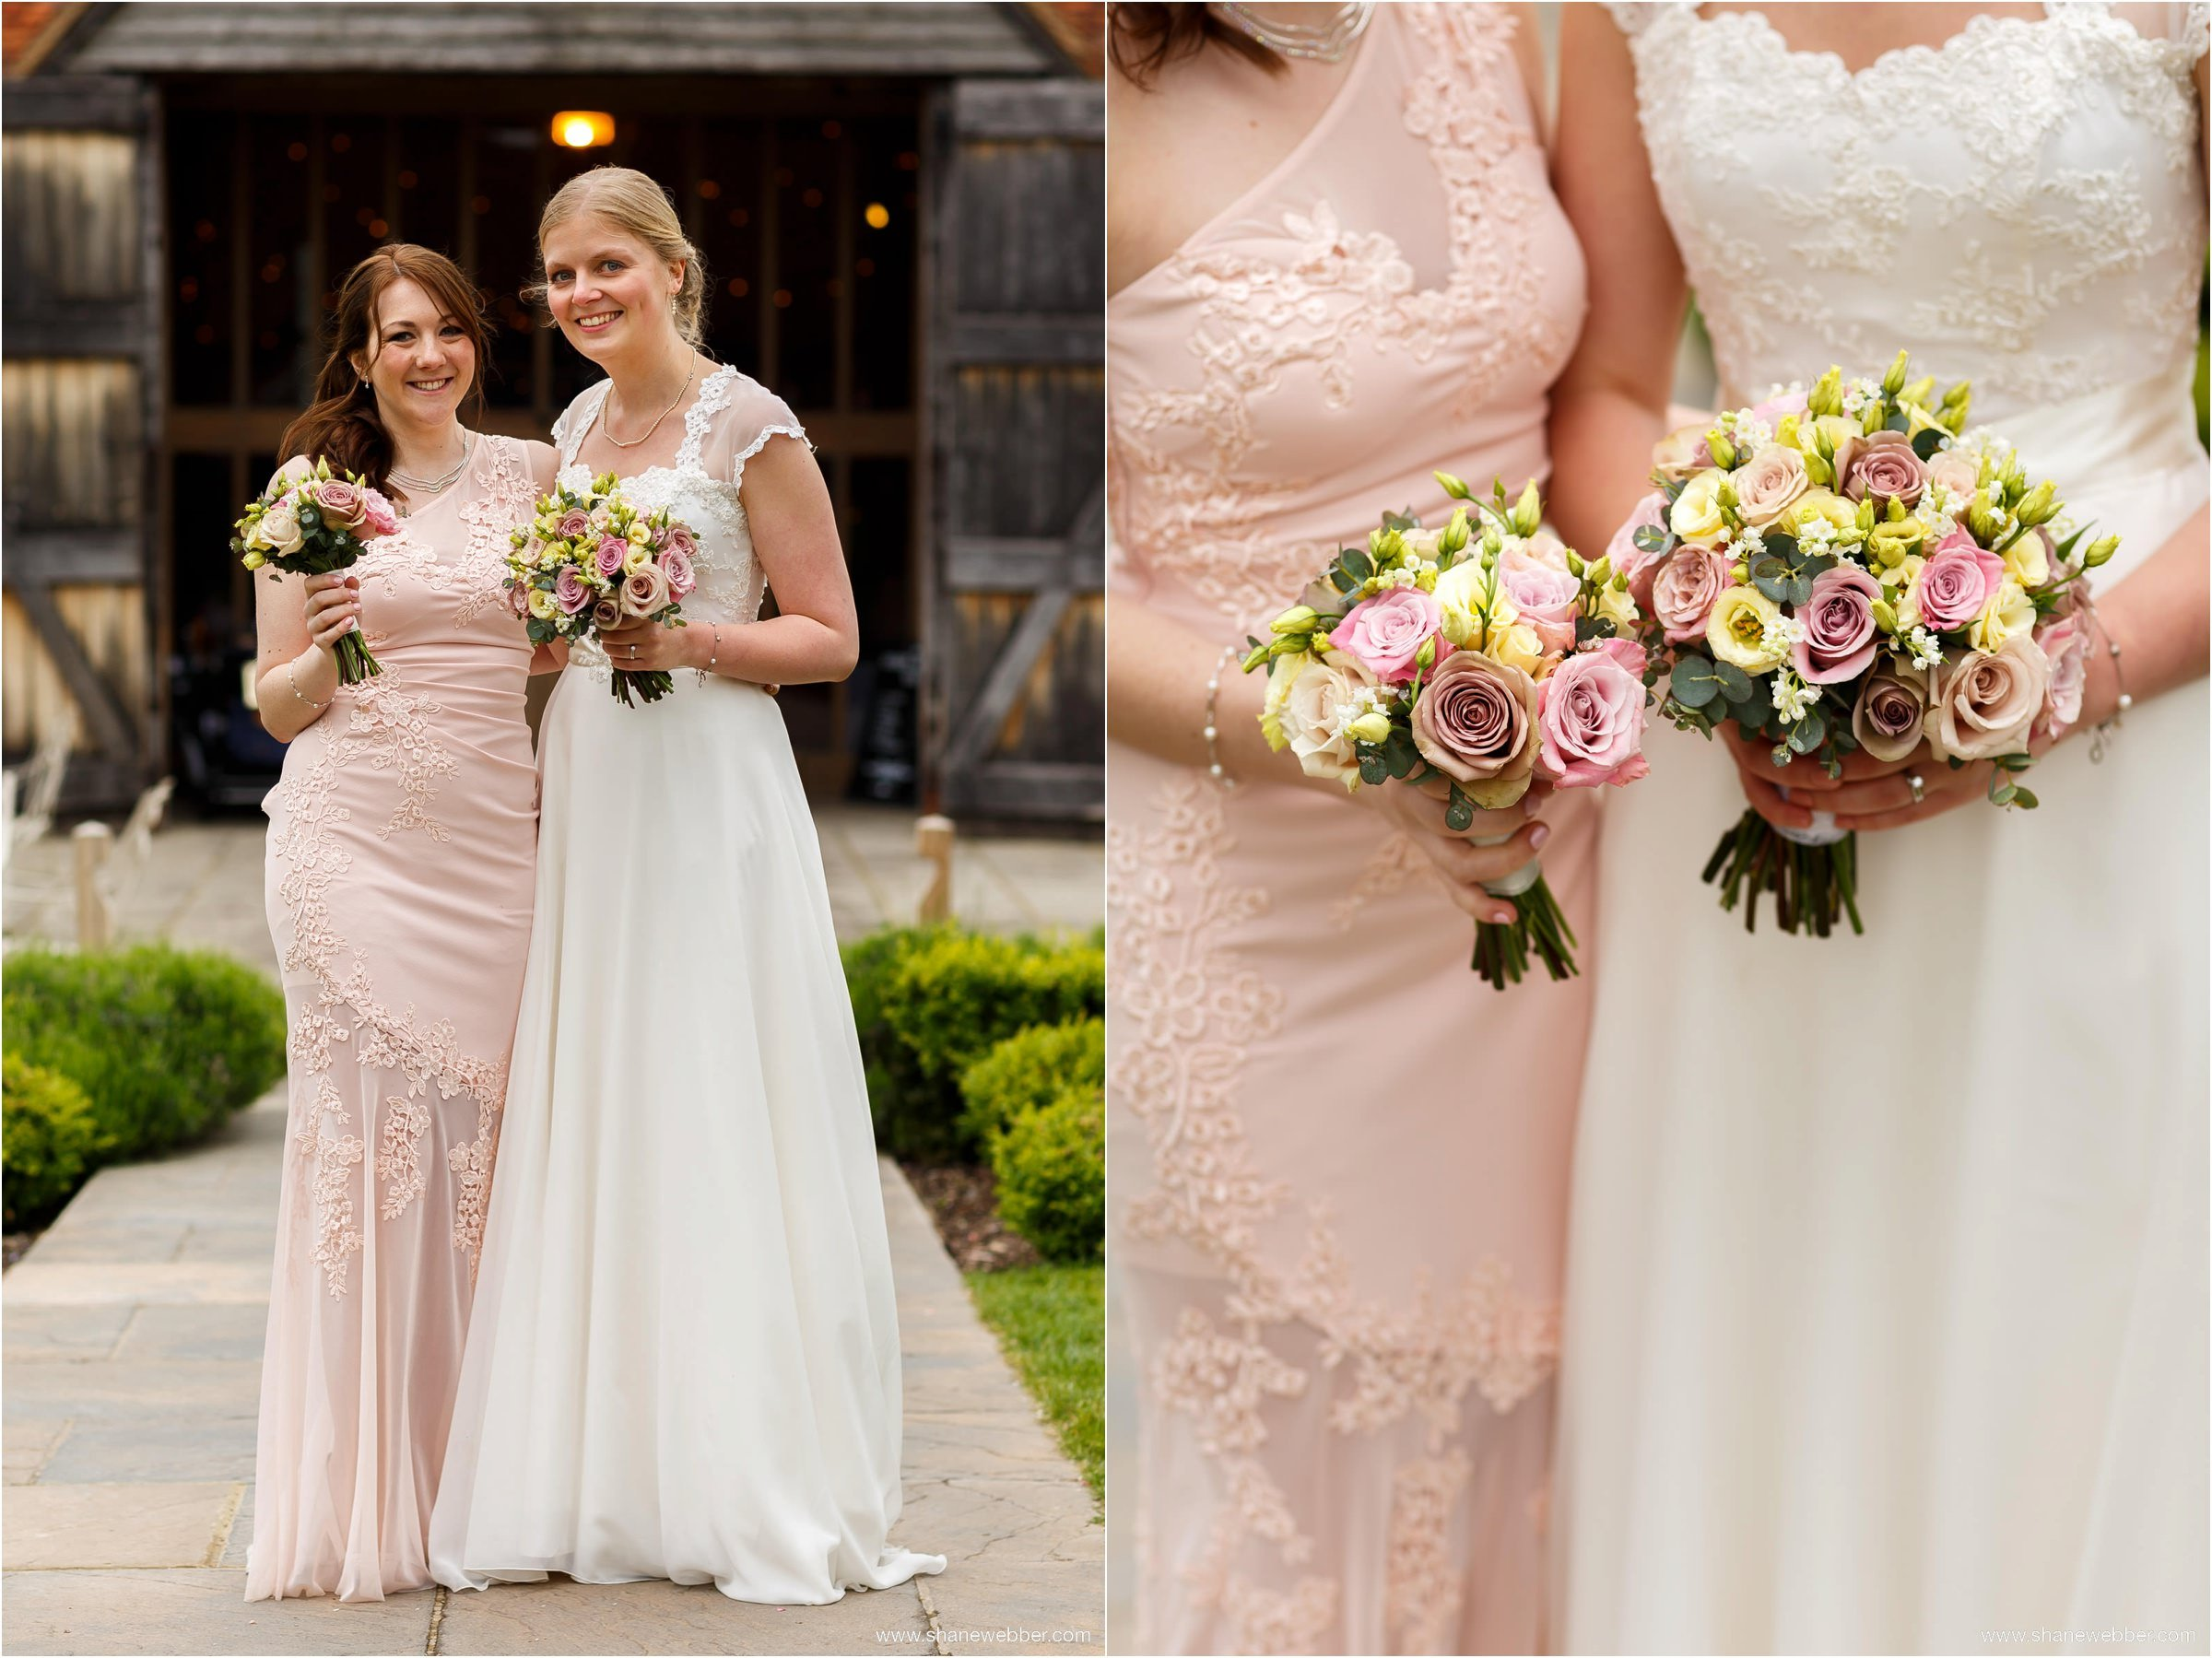 Bride and bridesmaid ay Ufton Court Barn Wedding